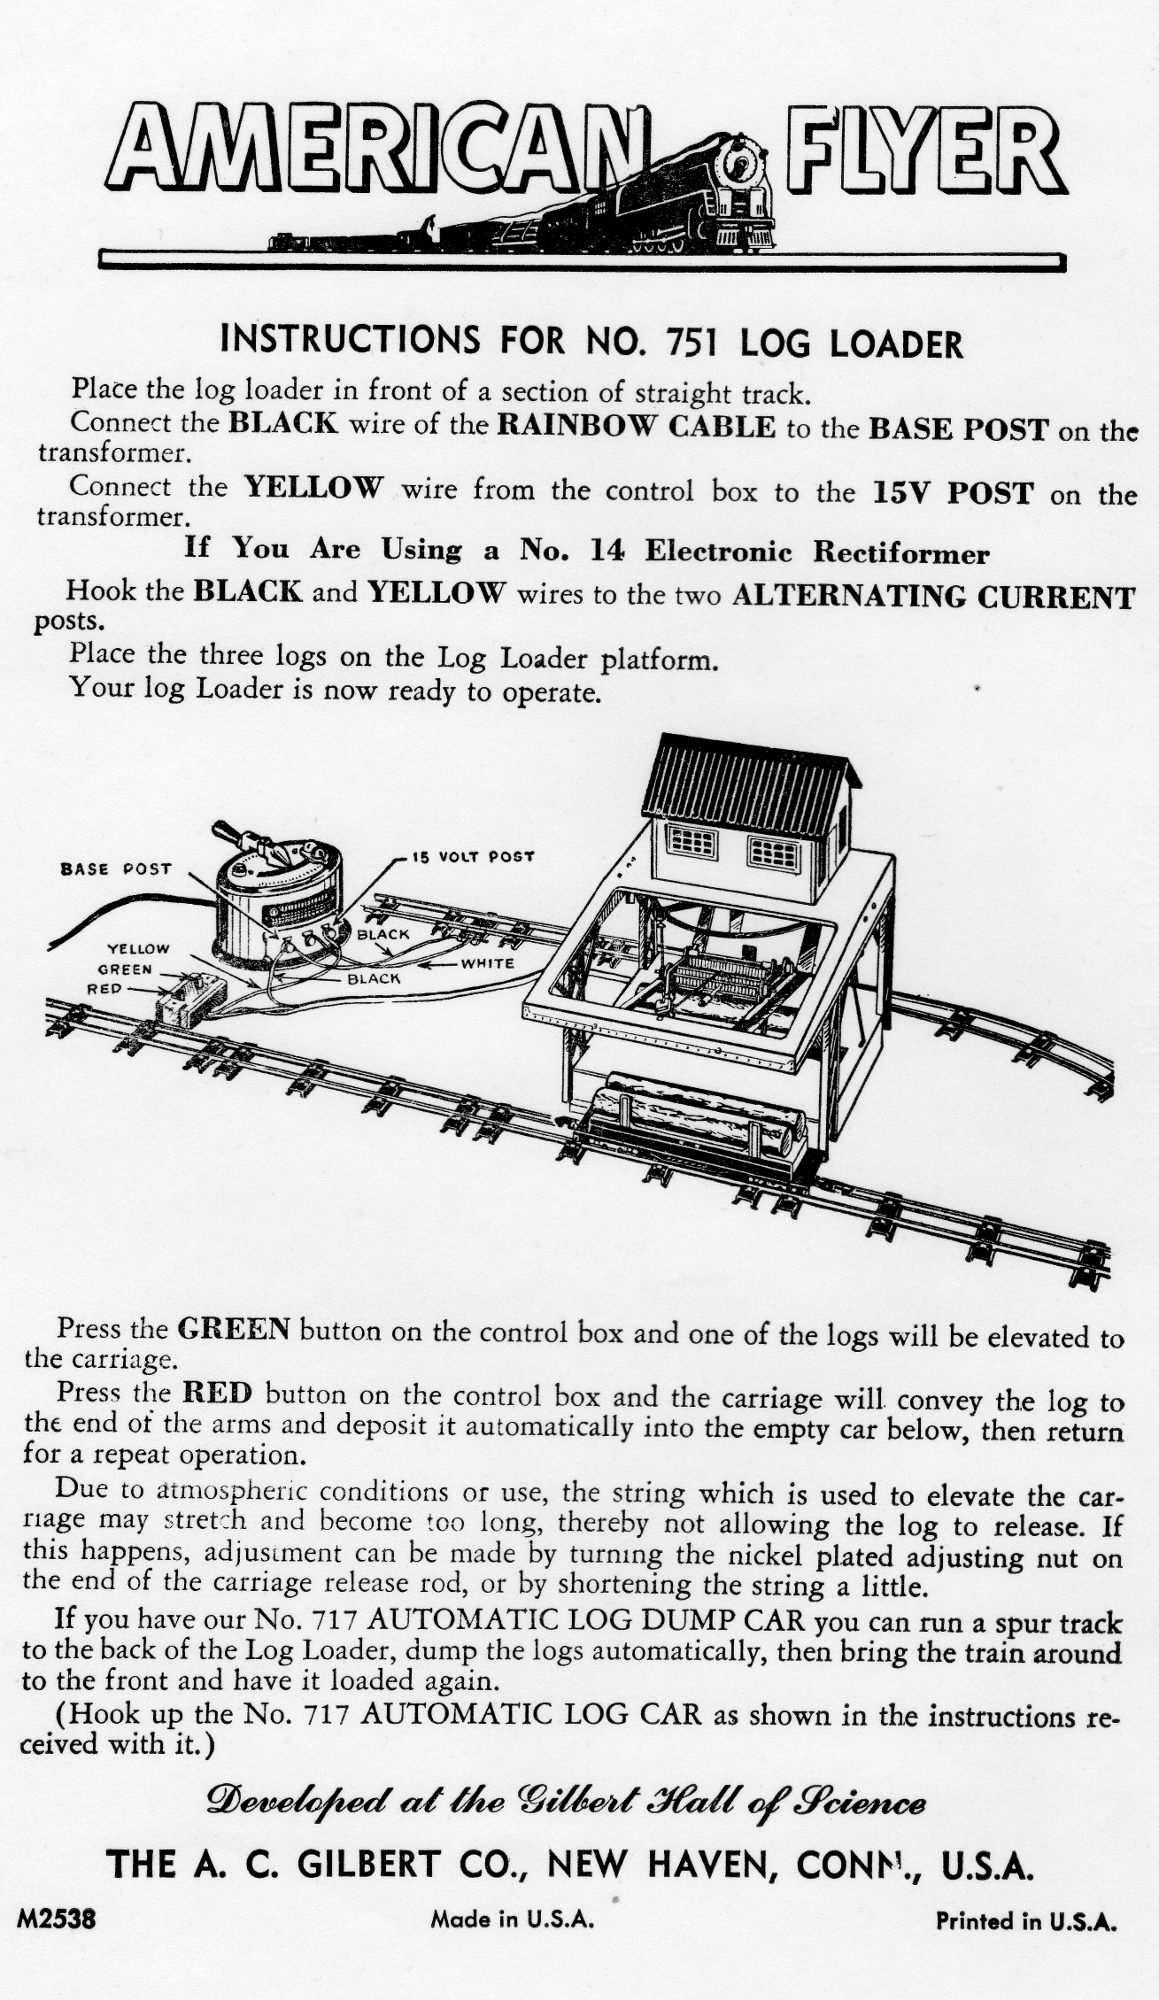 American Flyer Log Loader No. 751 Instructions